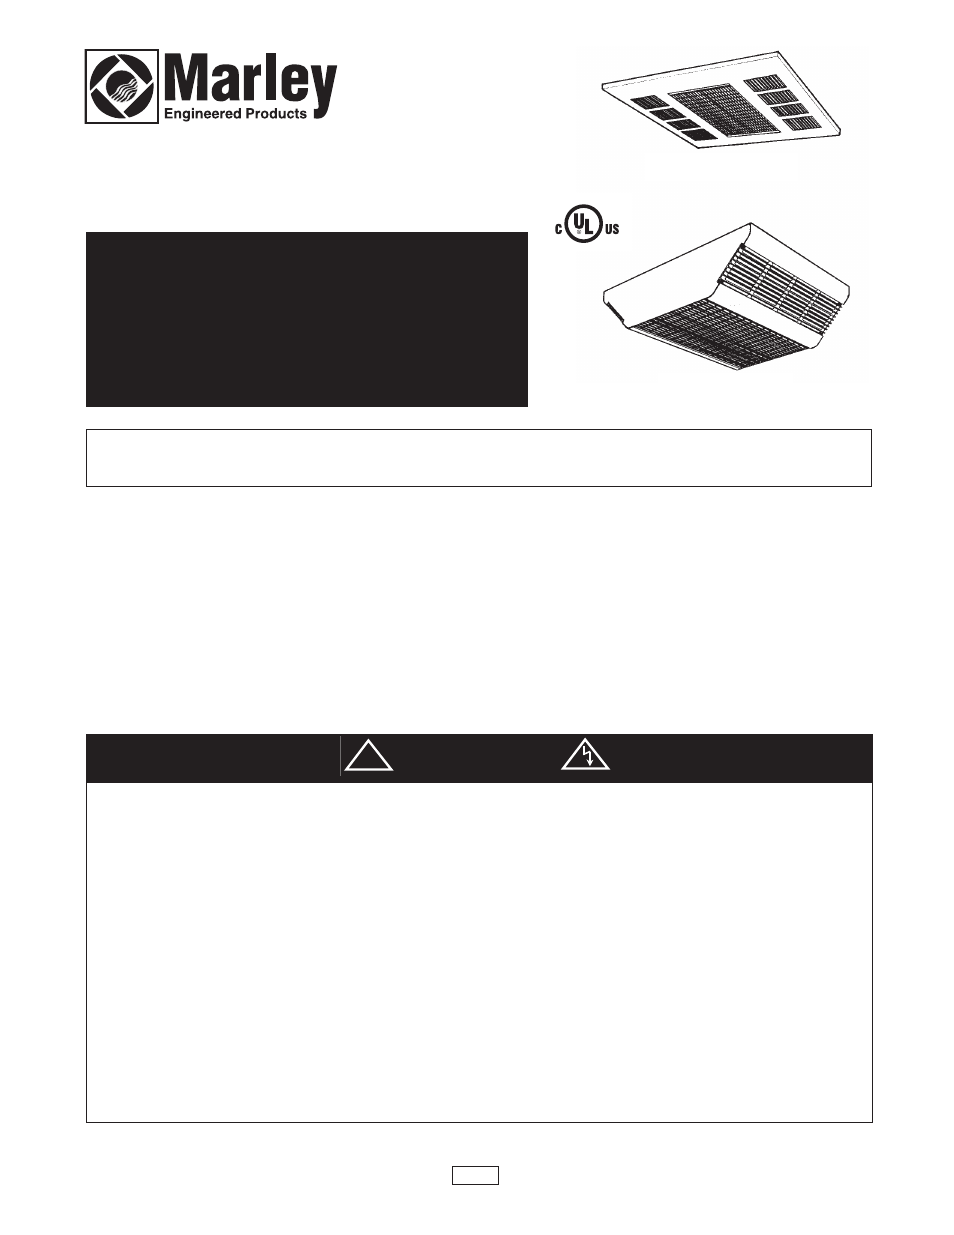 hight resolution of qmark cdf commercial downflow ceiling mounted heaters user manual 6 pages